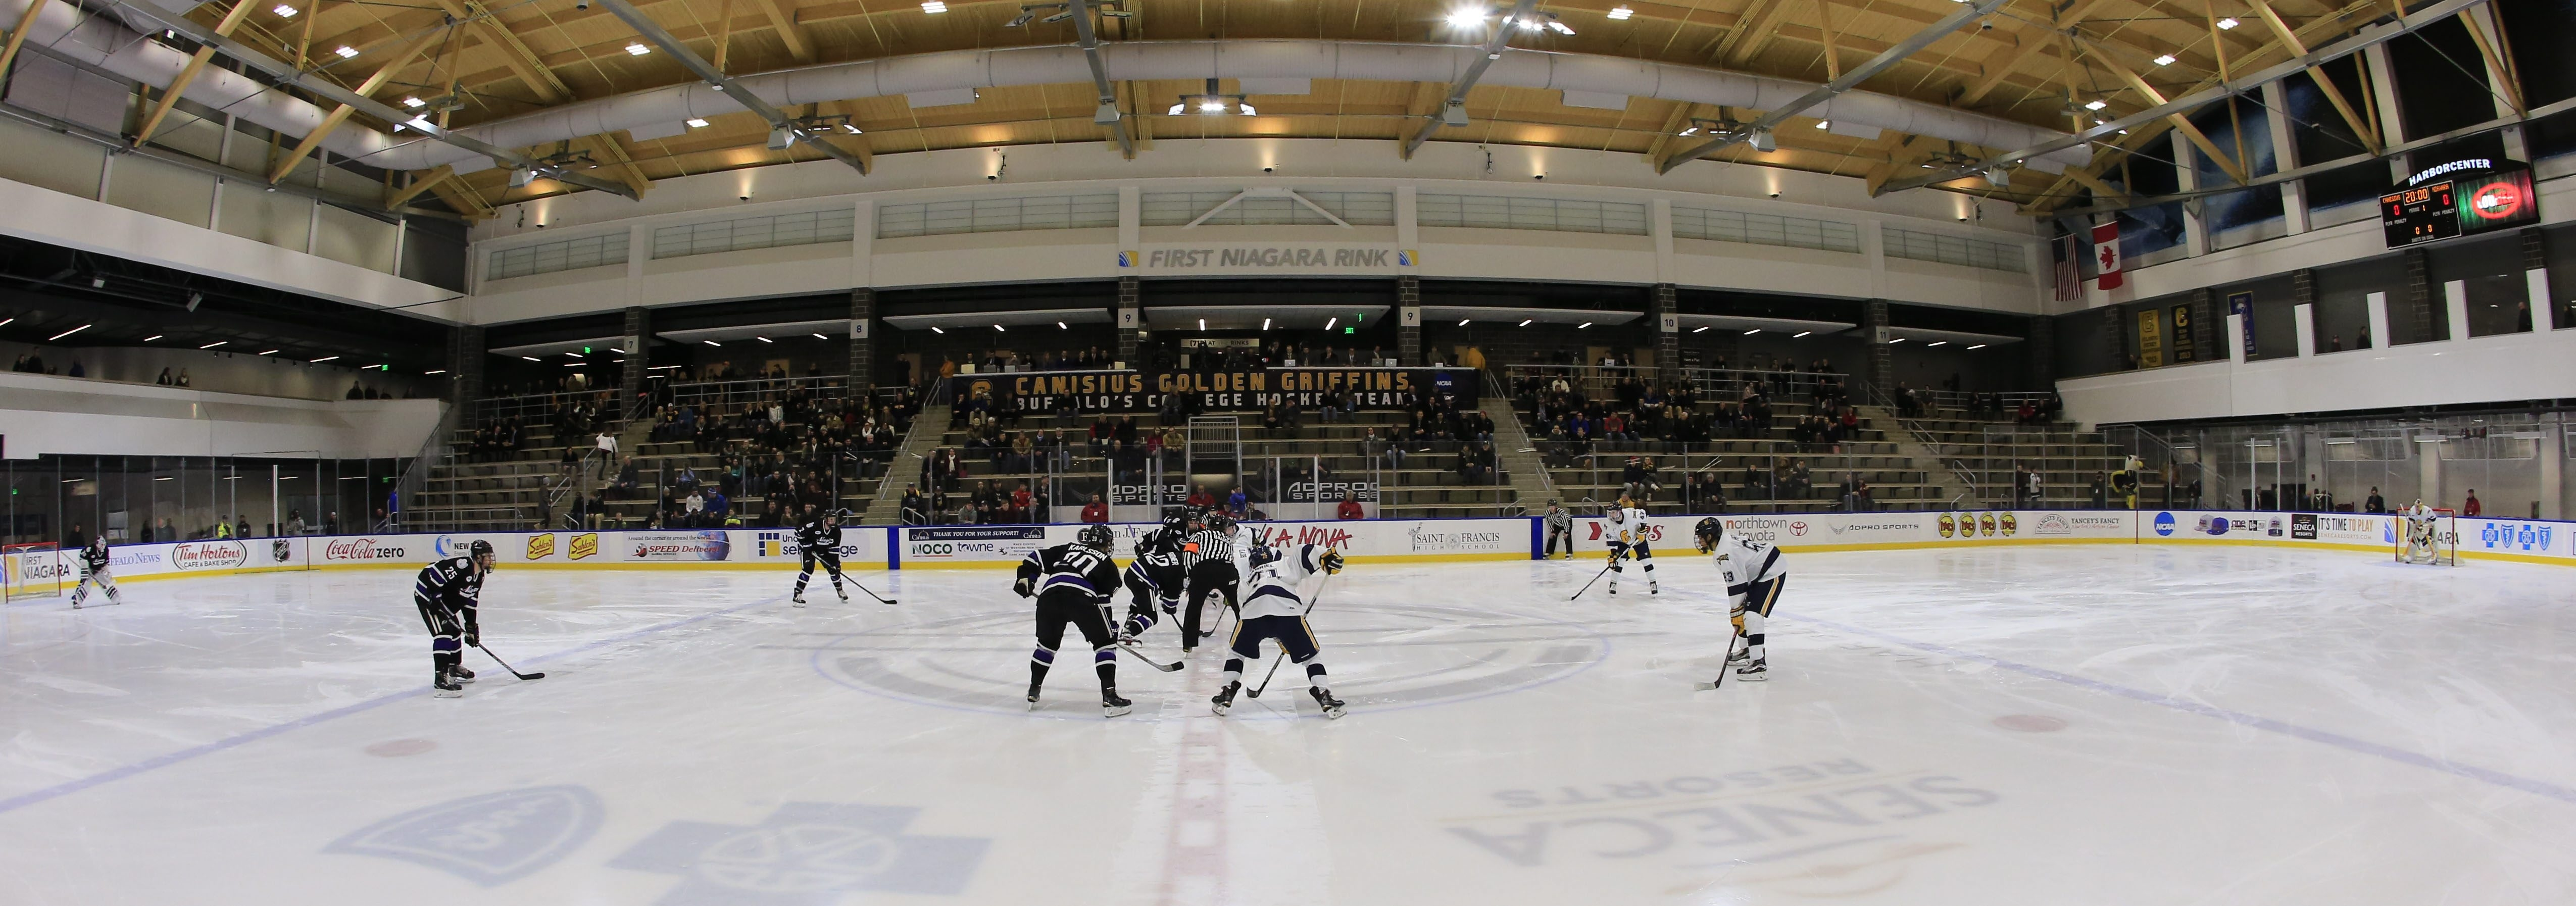 HarborCenter has turned out to be a great home for the Canisius hockey team.